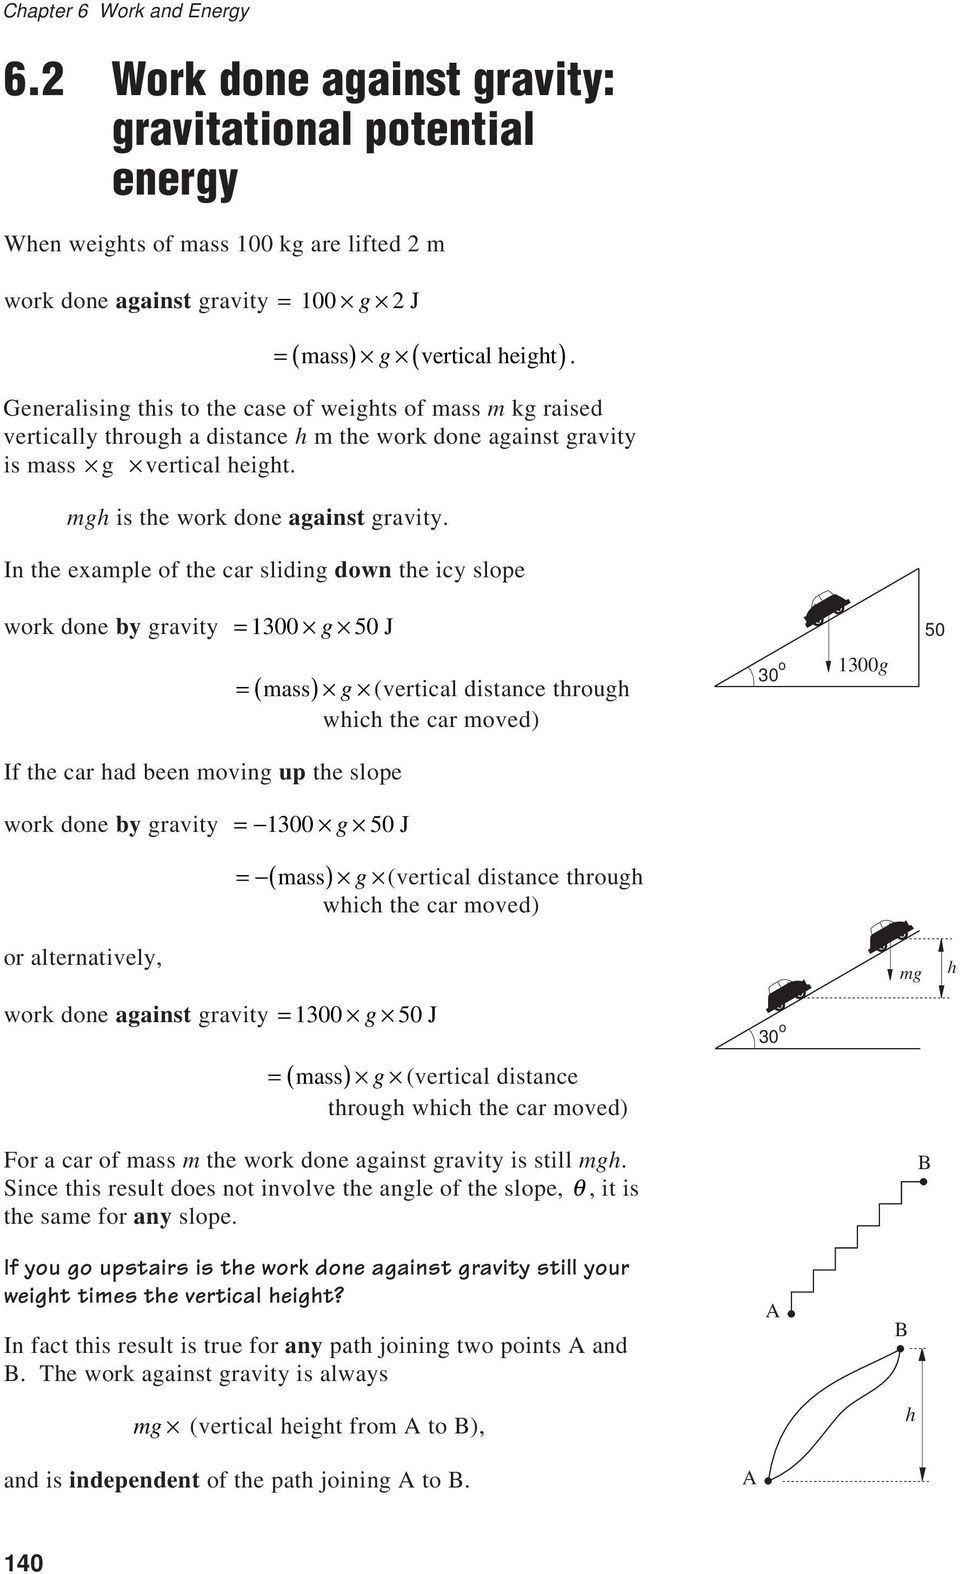 In the example of the car sliding down the icy slope work done by gravity = 1300 g 50 J If the car had been moving up the slope work done by gravity = 1300 g 50 J = ( mass) g (vertical distance